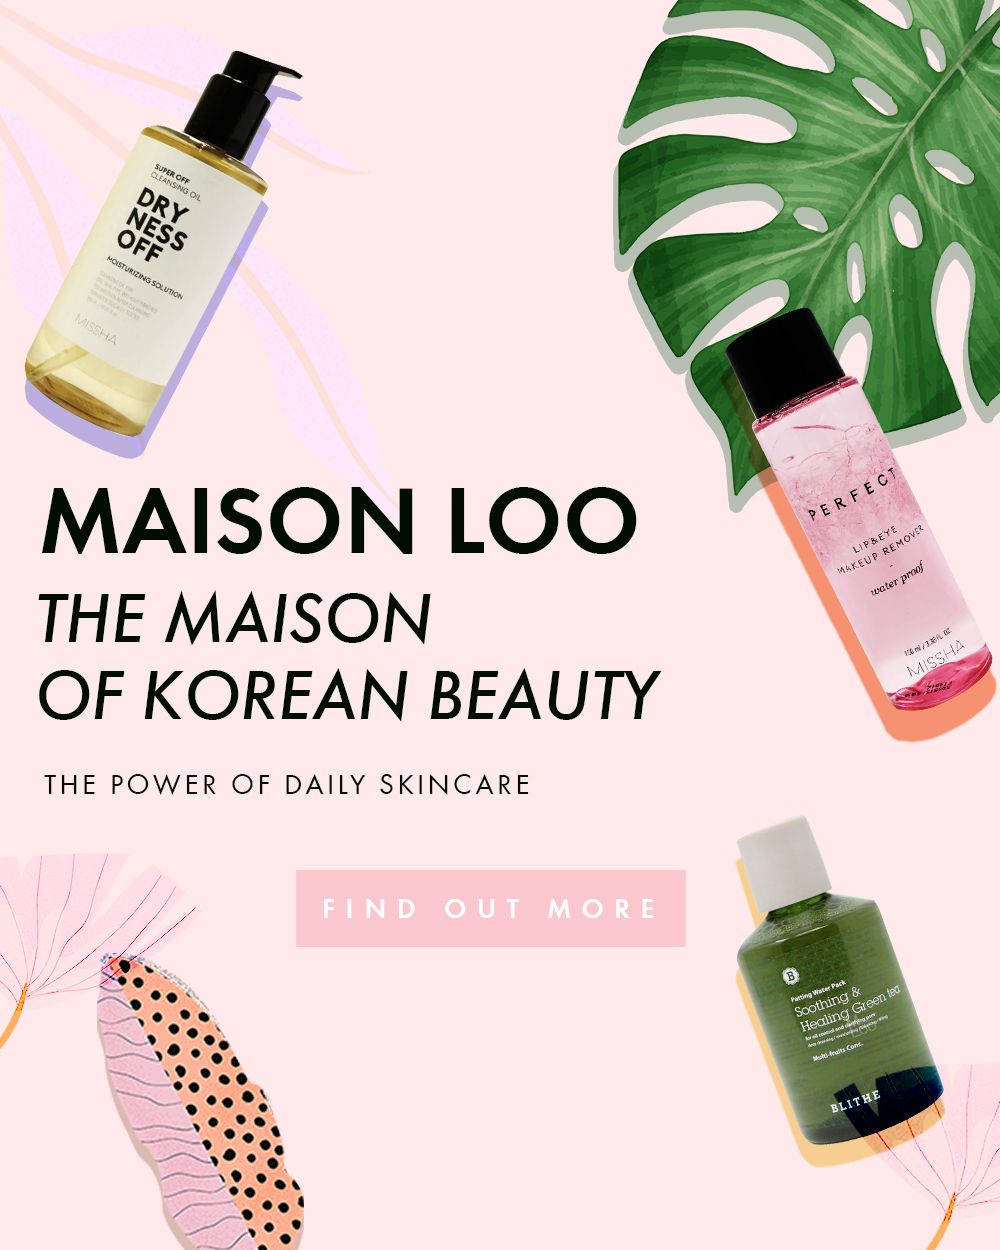 Korean cosmetics for the care of your skin